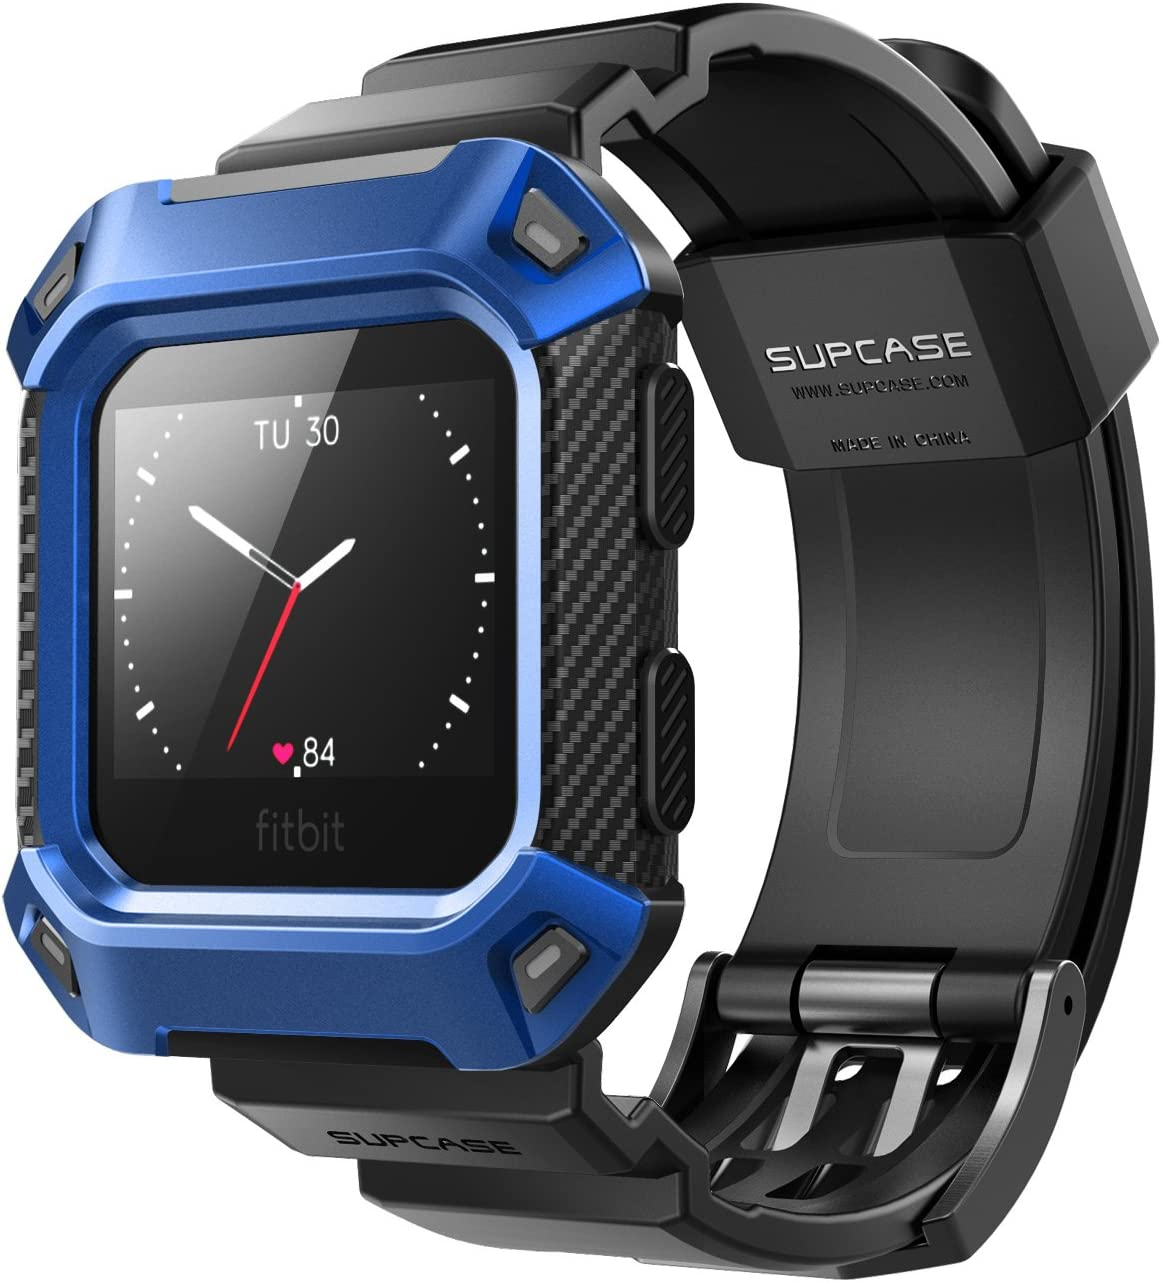 SUPCASE Fitbit Blaze Bands with Protective Case, [Unicorn Beetle Pro] Rugged Case Strap Bands for Fitbit Blaze Fitness Smart Watch (Blue)